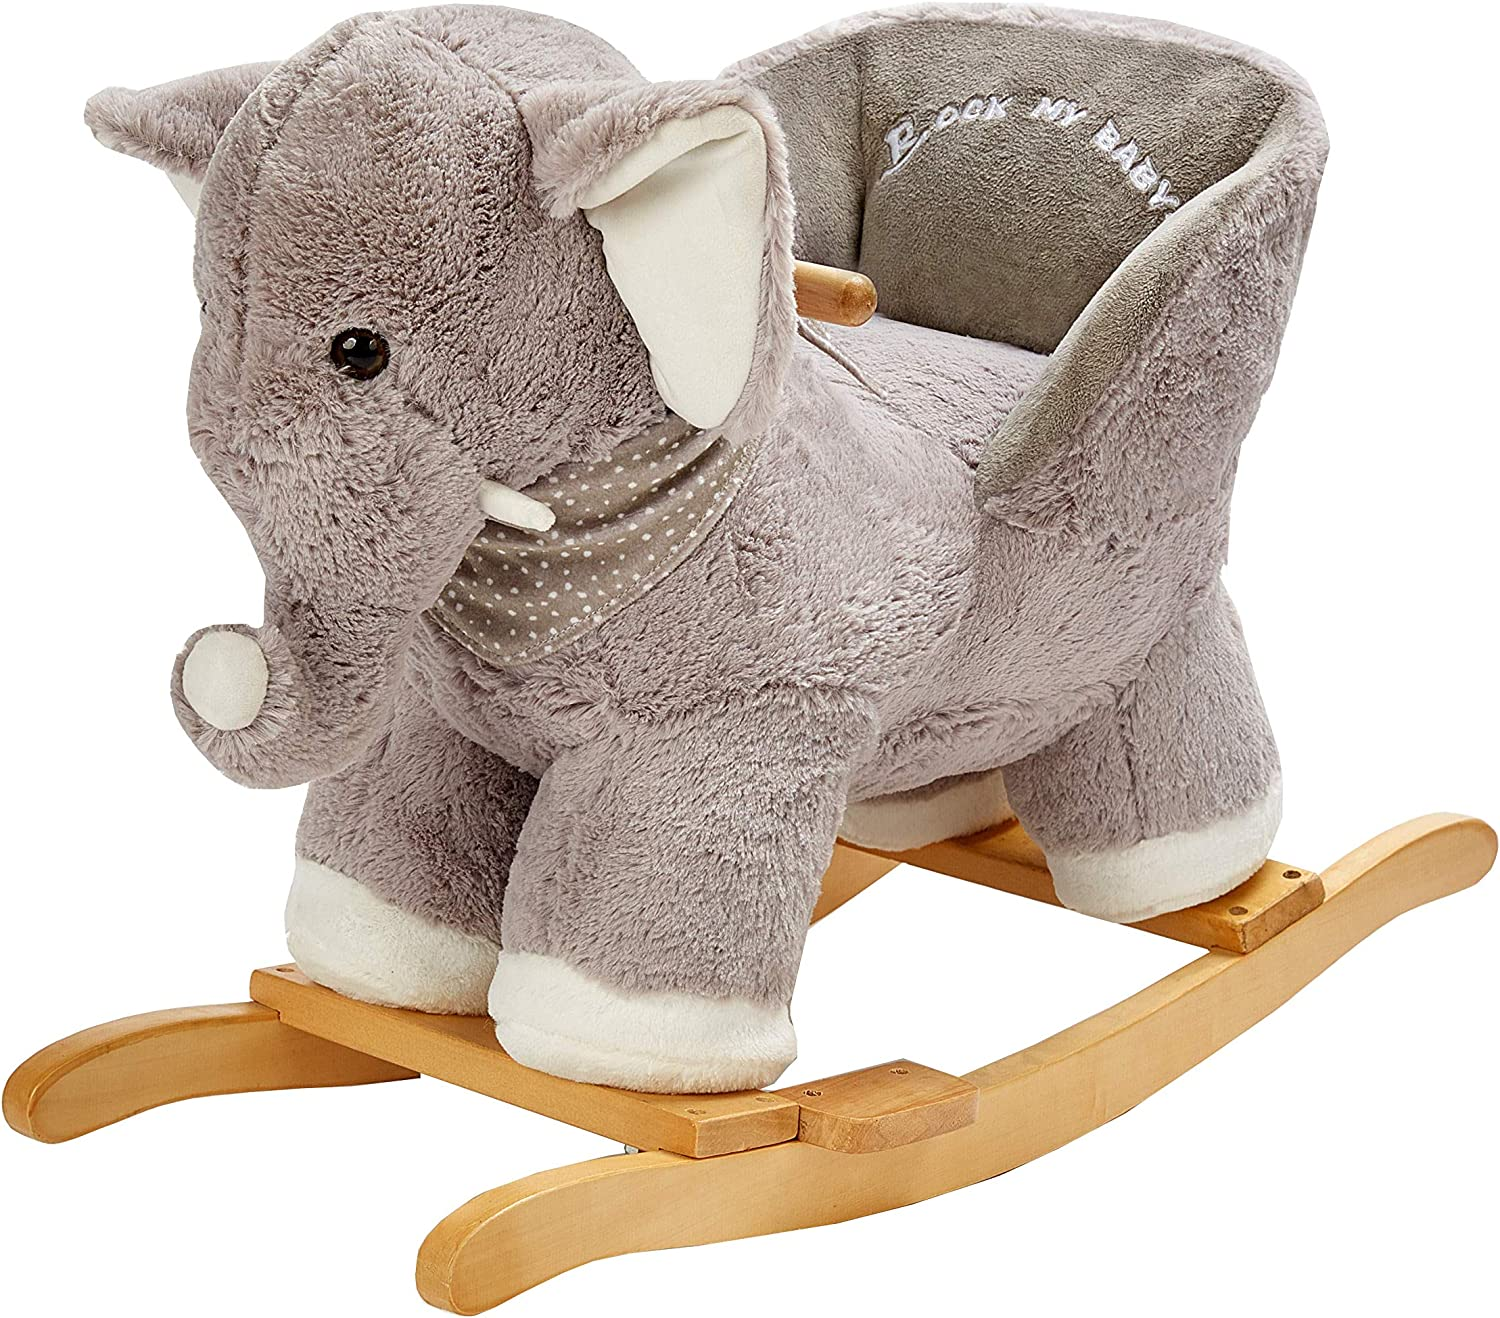 Top 10 Best Rocking Horse Toy (2020 Reviews & Guide) 3